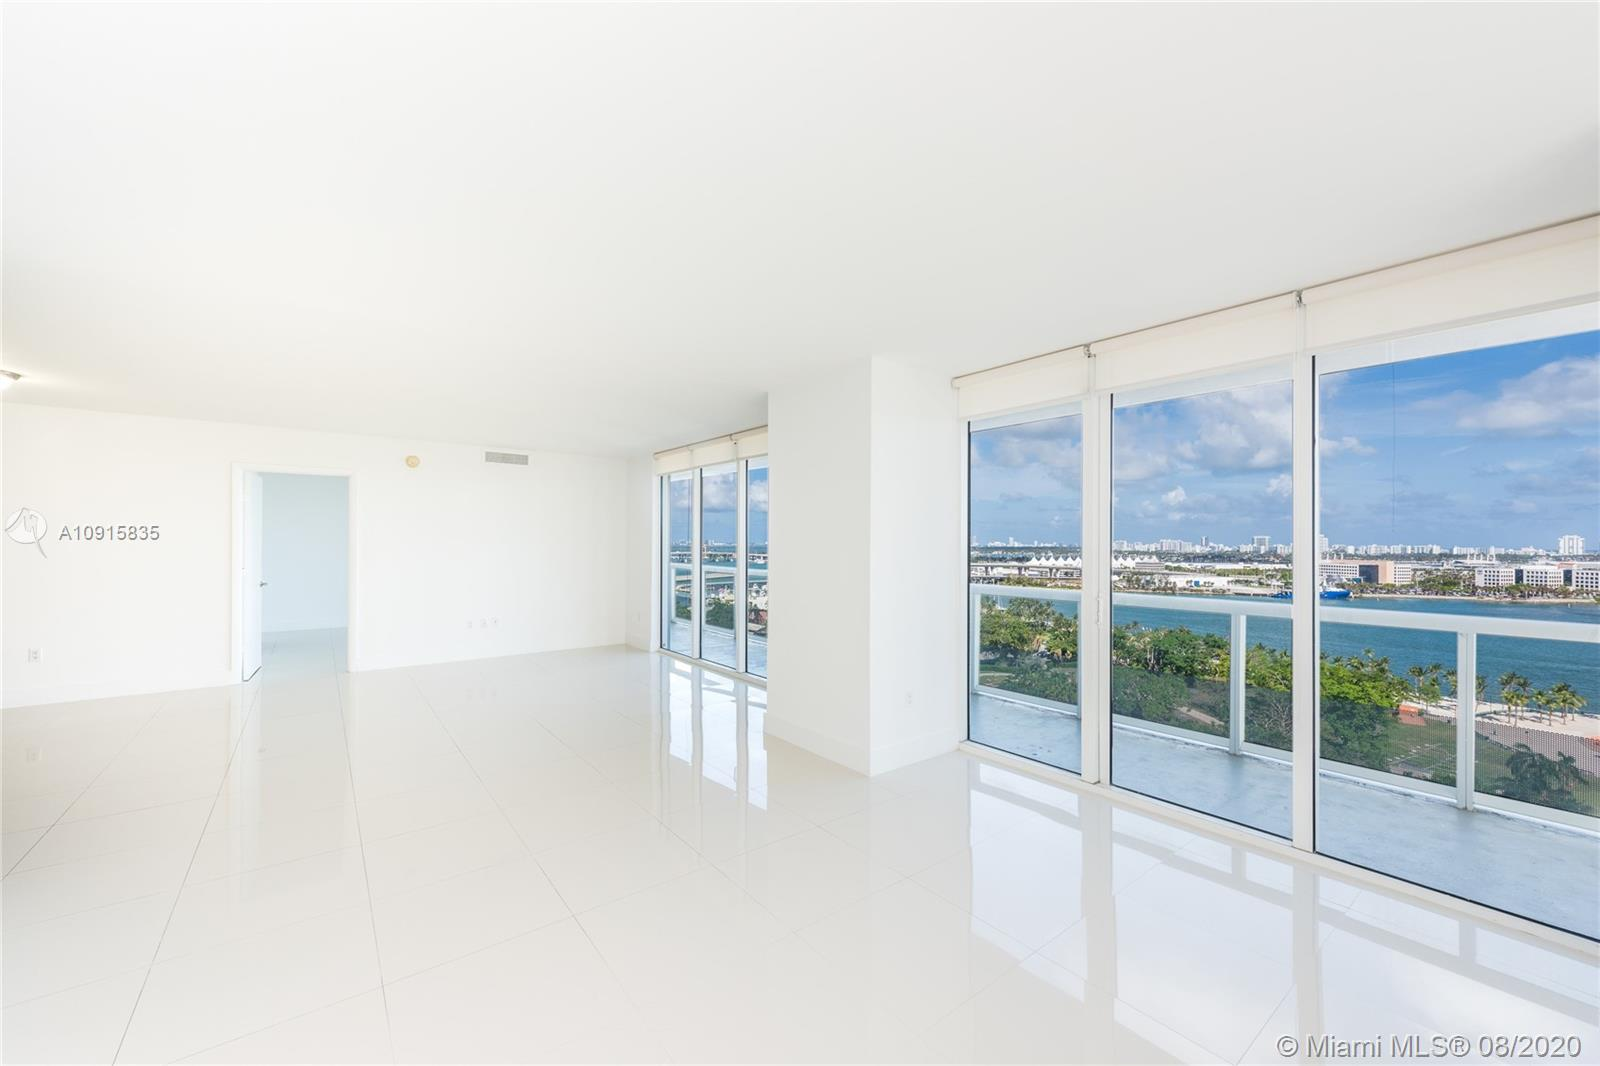 Spacious 3/2 corner unit with LARGE wrap-around glass balcony. Amazing Direct views of Bay Front Park, Miami Port, South Beach, Key Biscayne and Fisher Island. UPGRADED, marble floors, Italian kitchen: stainless steel appliances. INCREDIBLE amenities include: gym, Pilates, spa, heated pool, formal and informal club house, 24-hr security, door man, valet service, concierge!